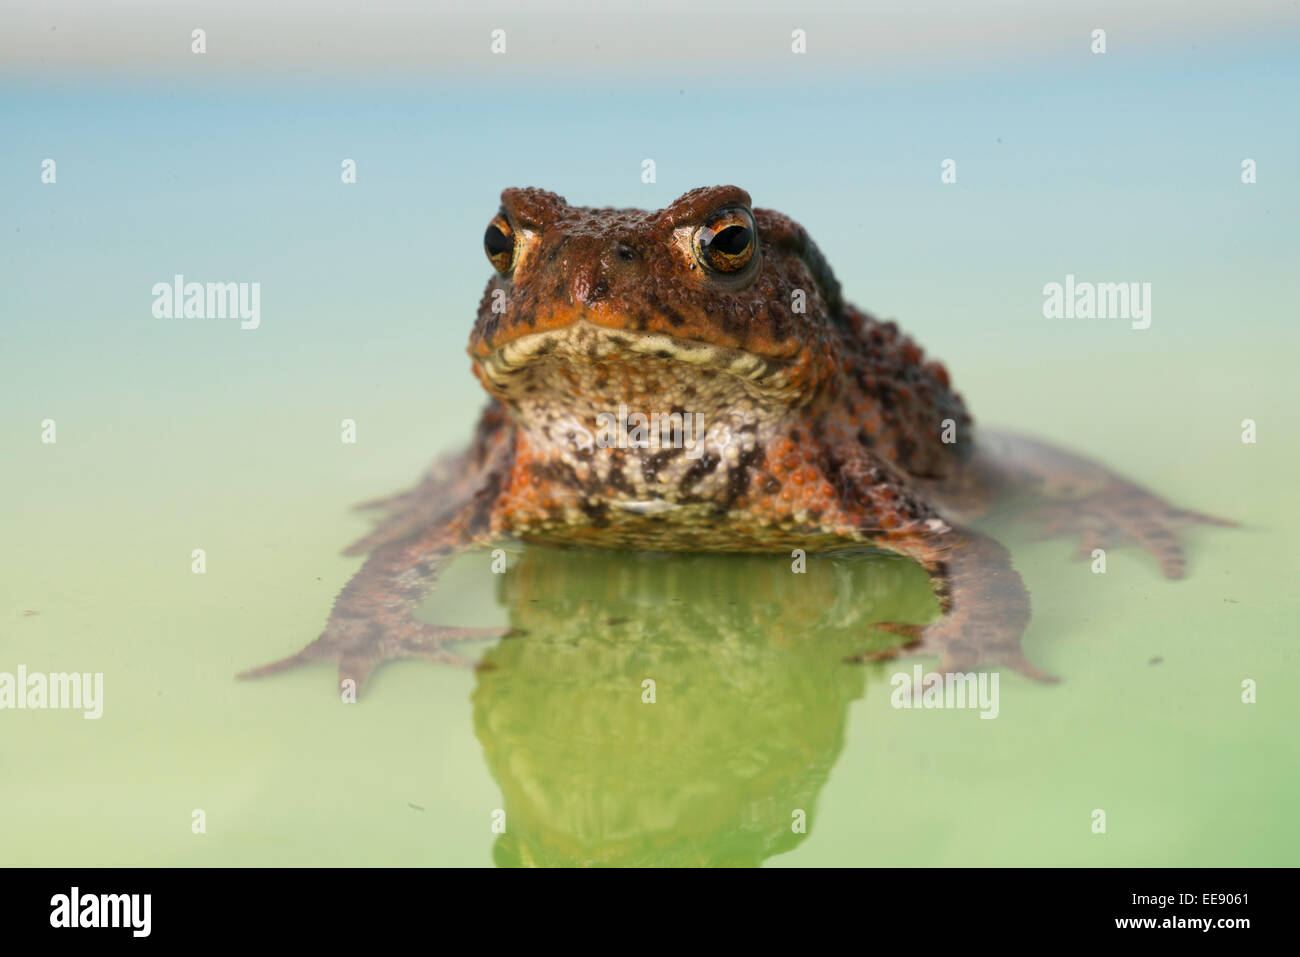 common european toad [Bufo bufo] Stock Photo